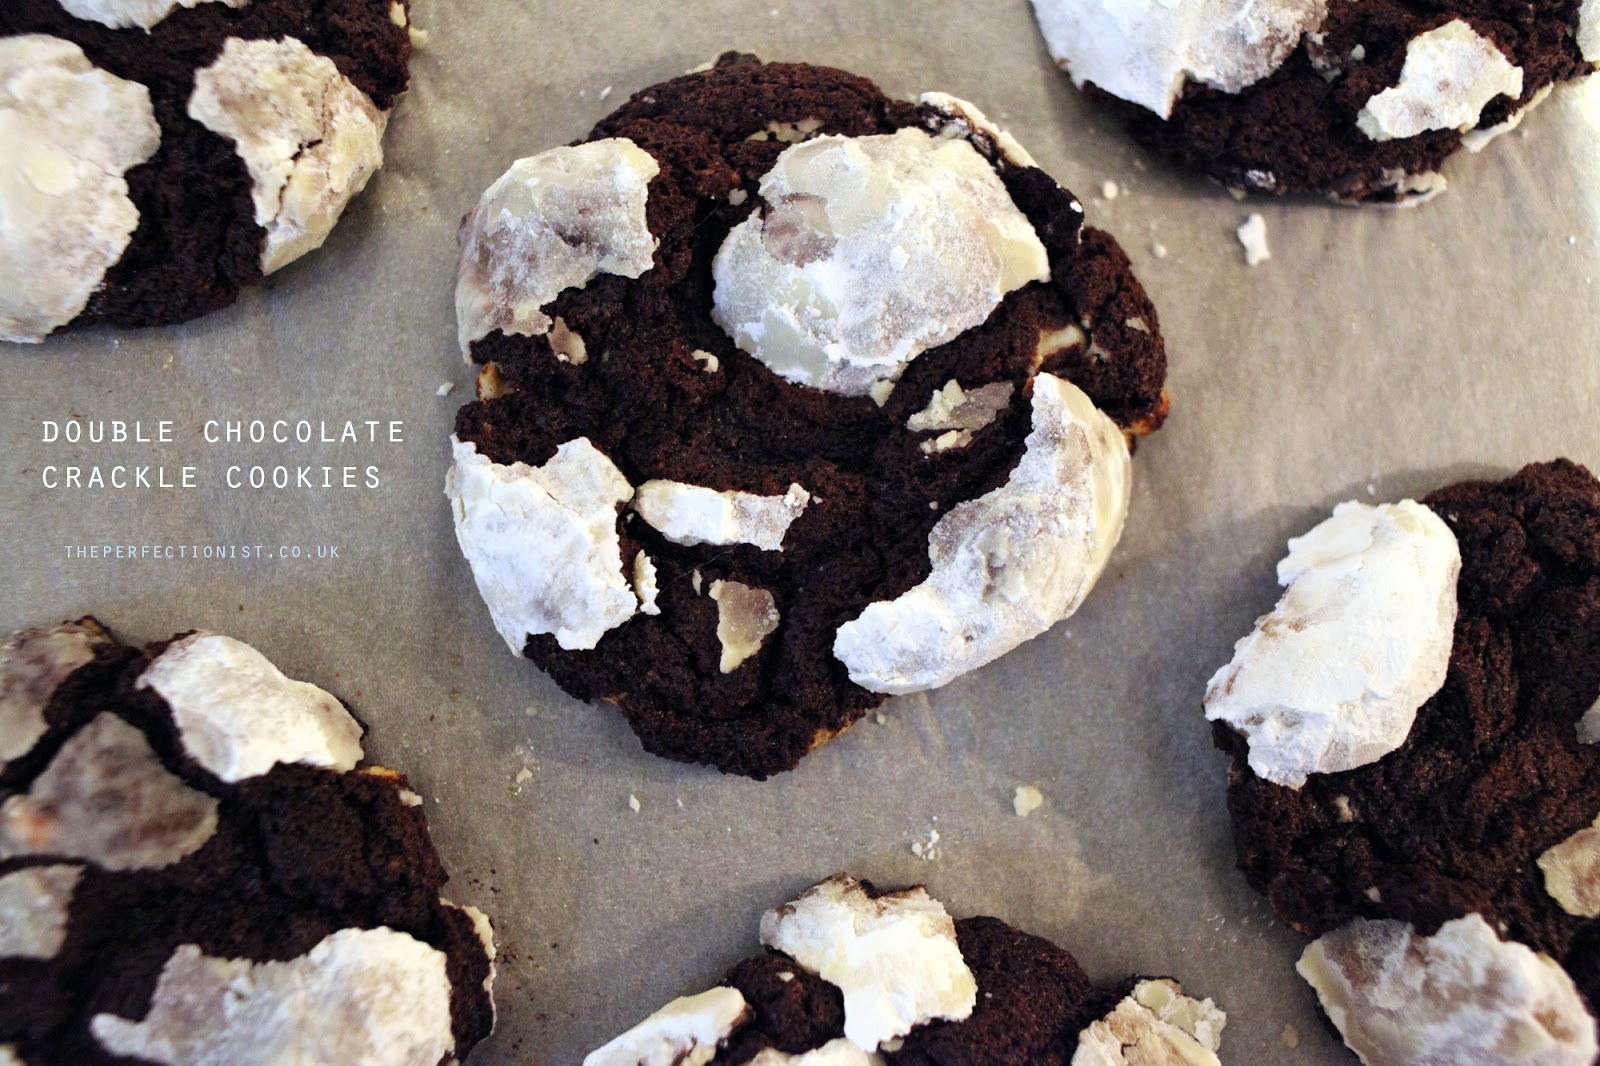 The Perfectionist: Double Chocolate Crackle Cookies